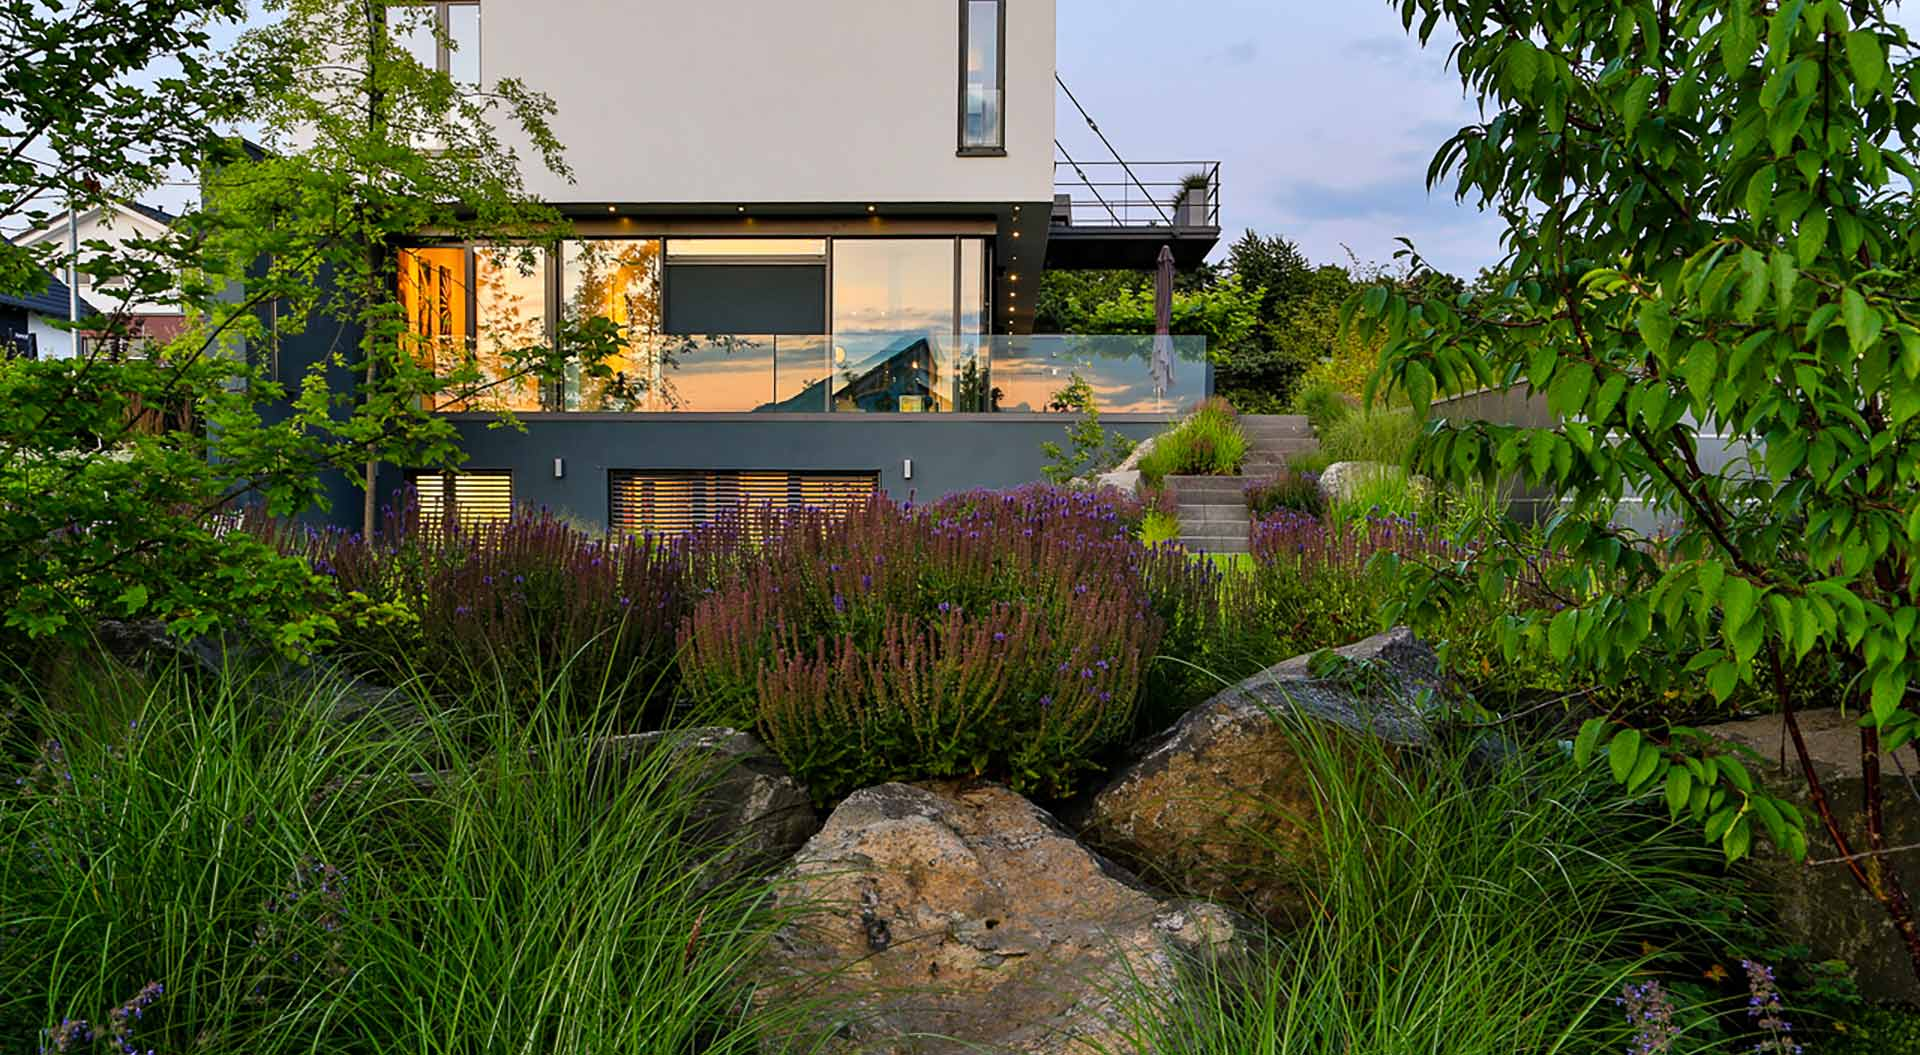 Varied natural material in front of a modern house